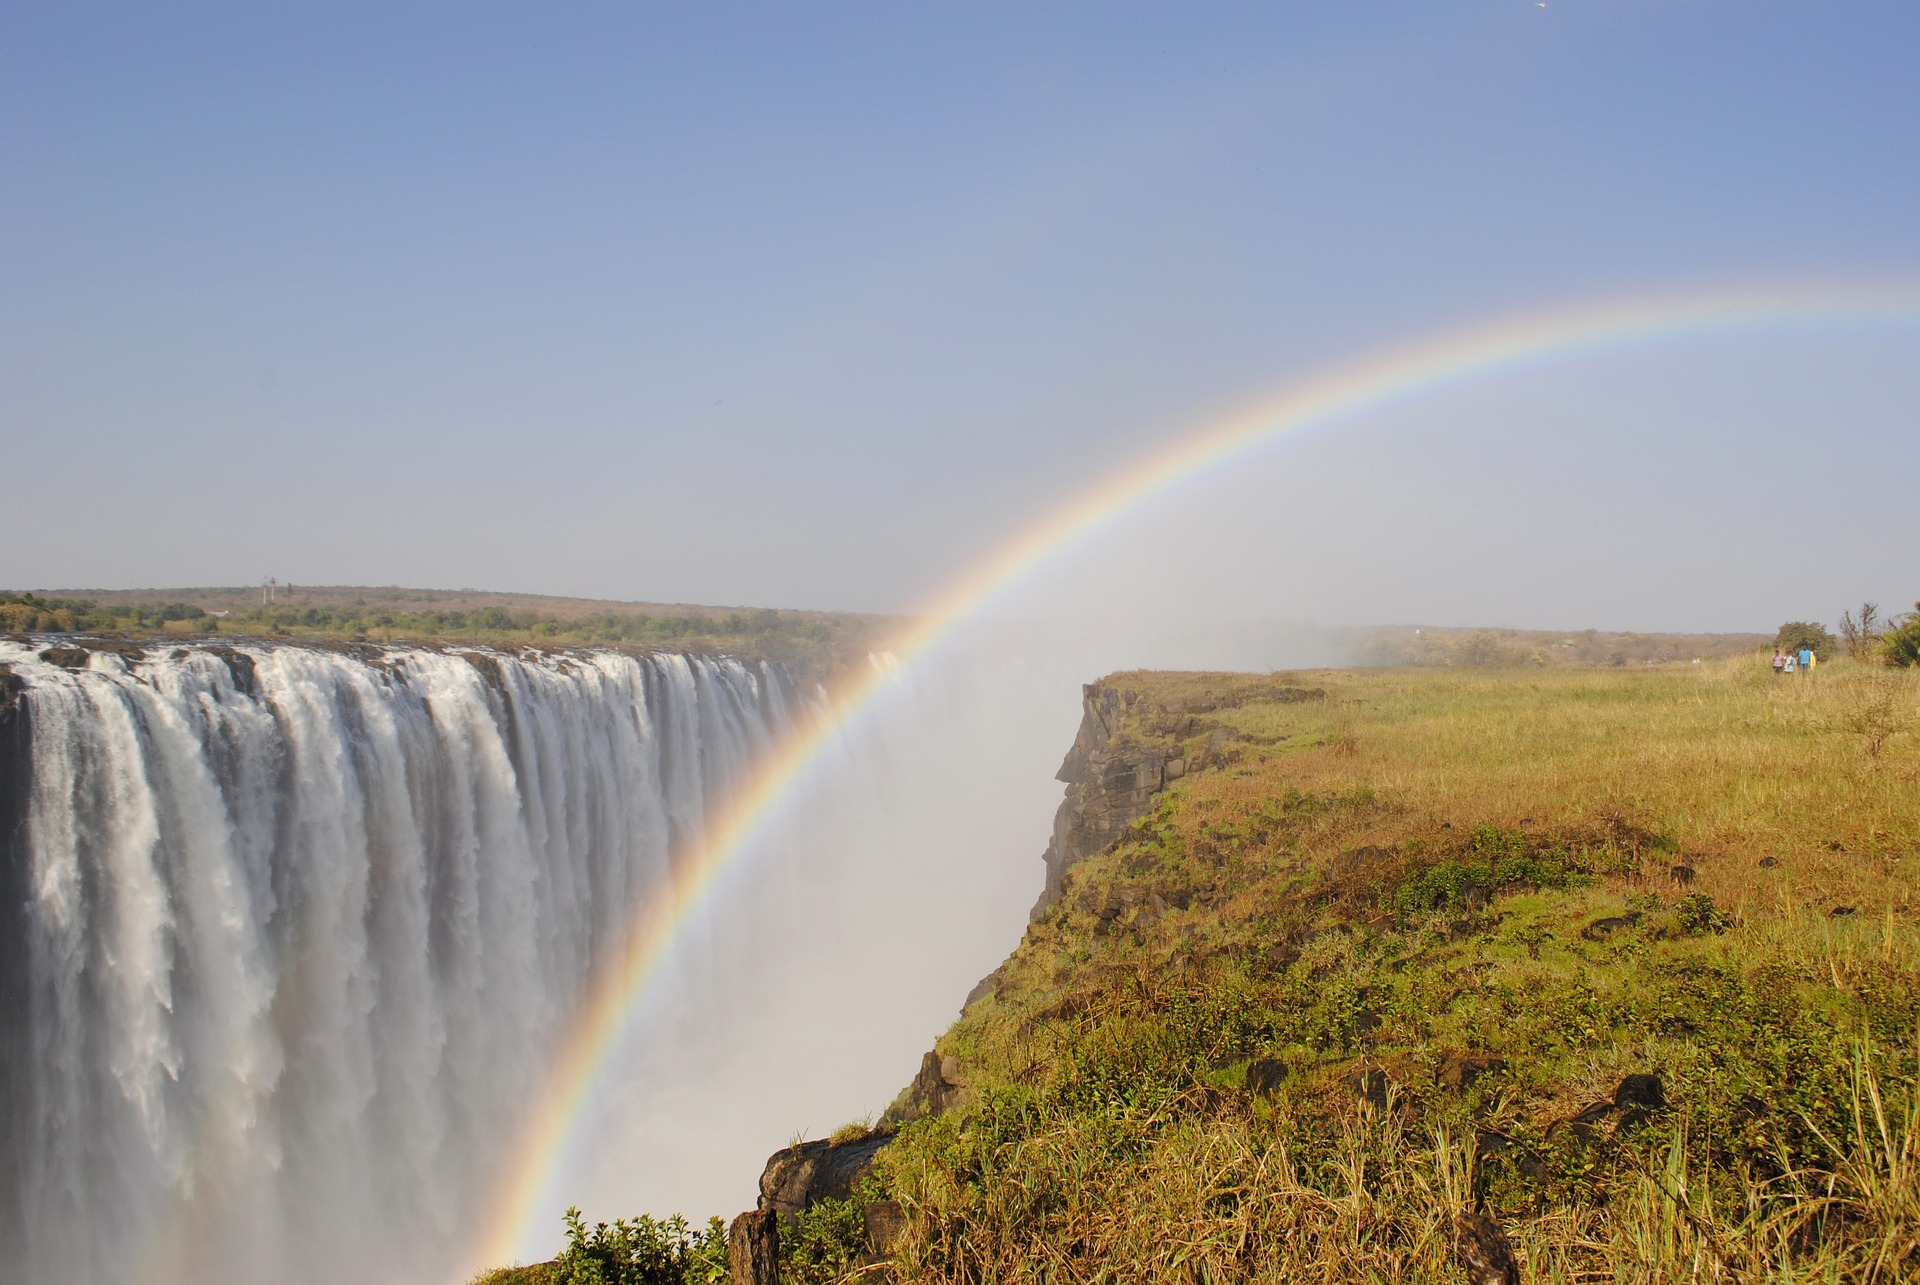 Victoria Falls is shared by both Zambia and Zimbabwe.